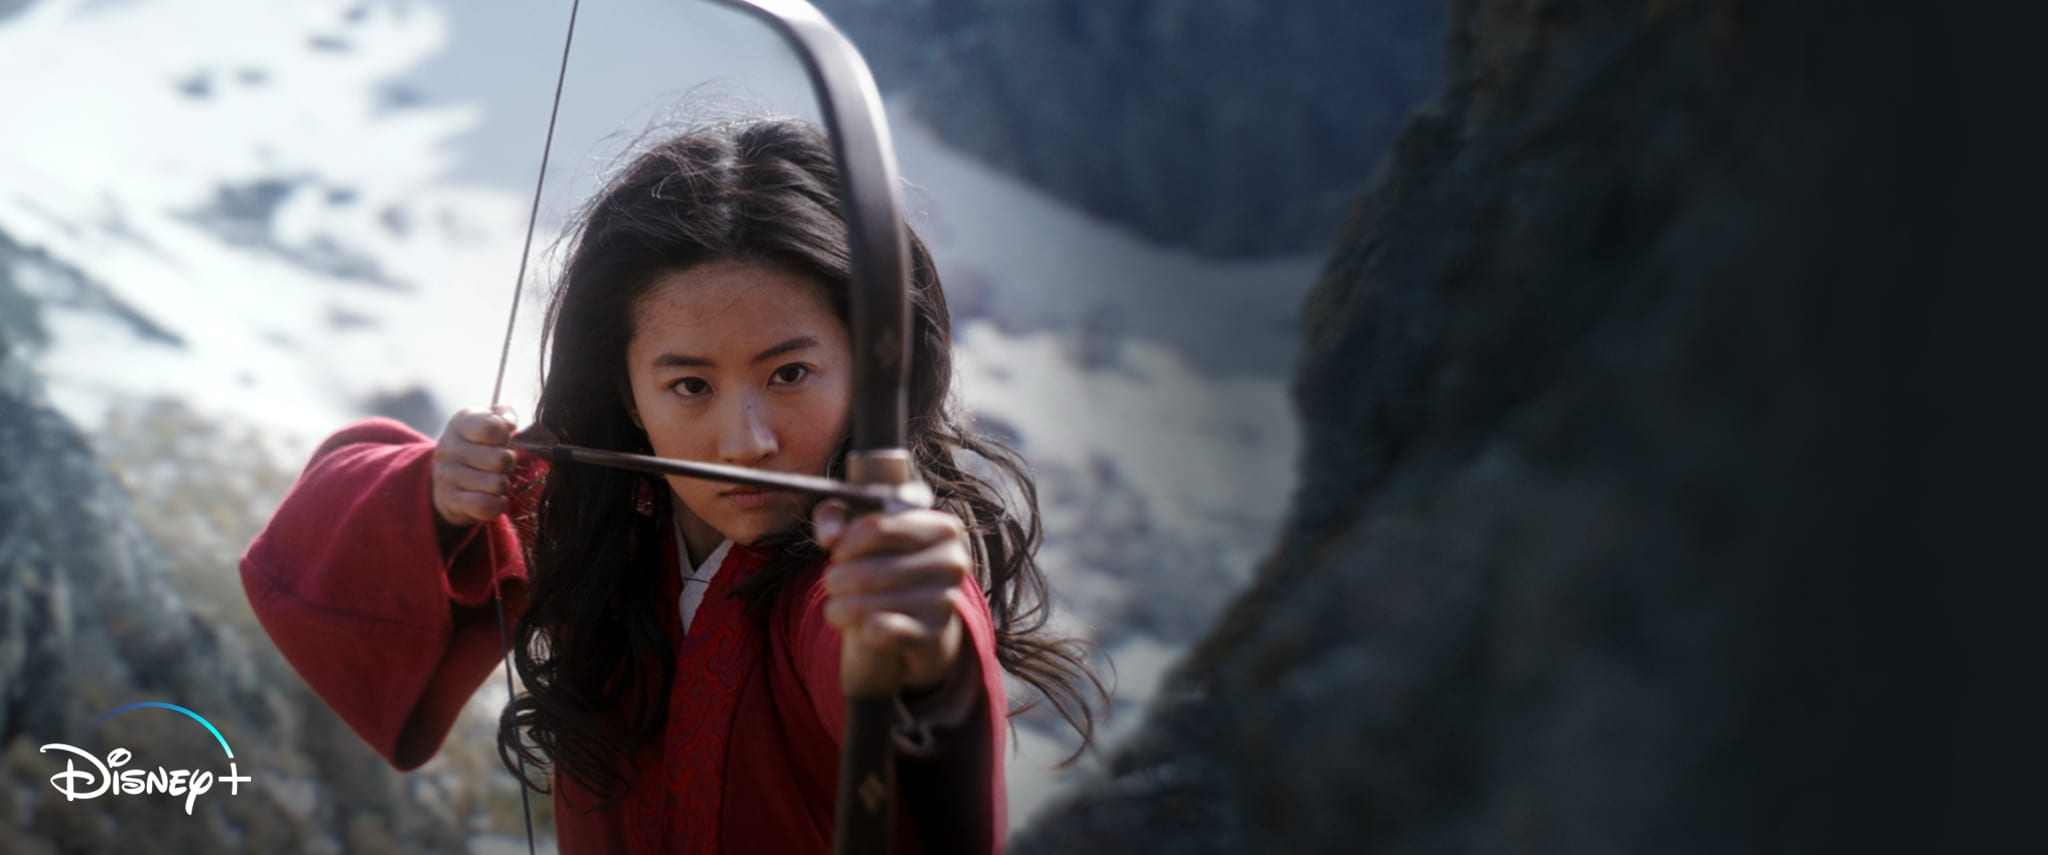 Mulan (2020) movie page hero **12/4 NOW STREAMING ON DISNEY+ [D+ LOGO UPDATE (NON PREMIER ACCESS)]**